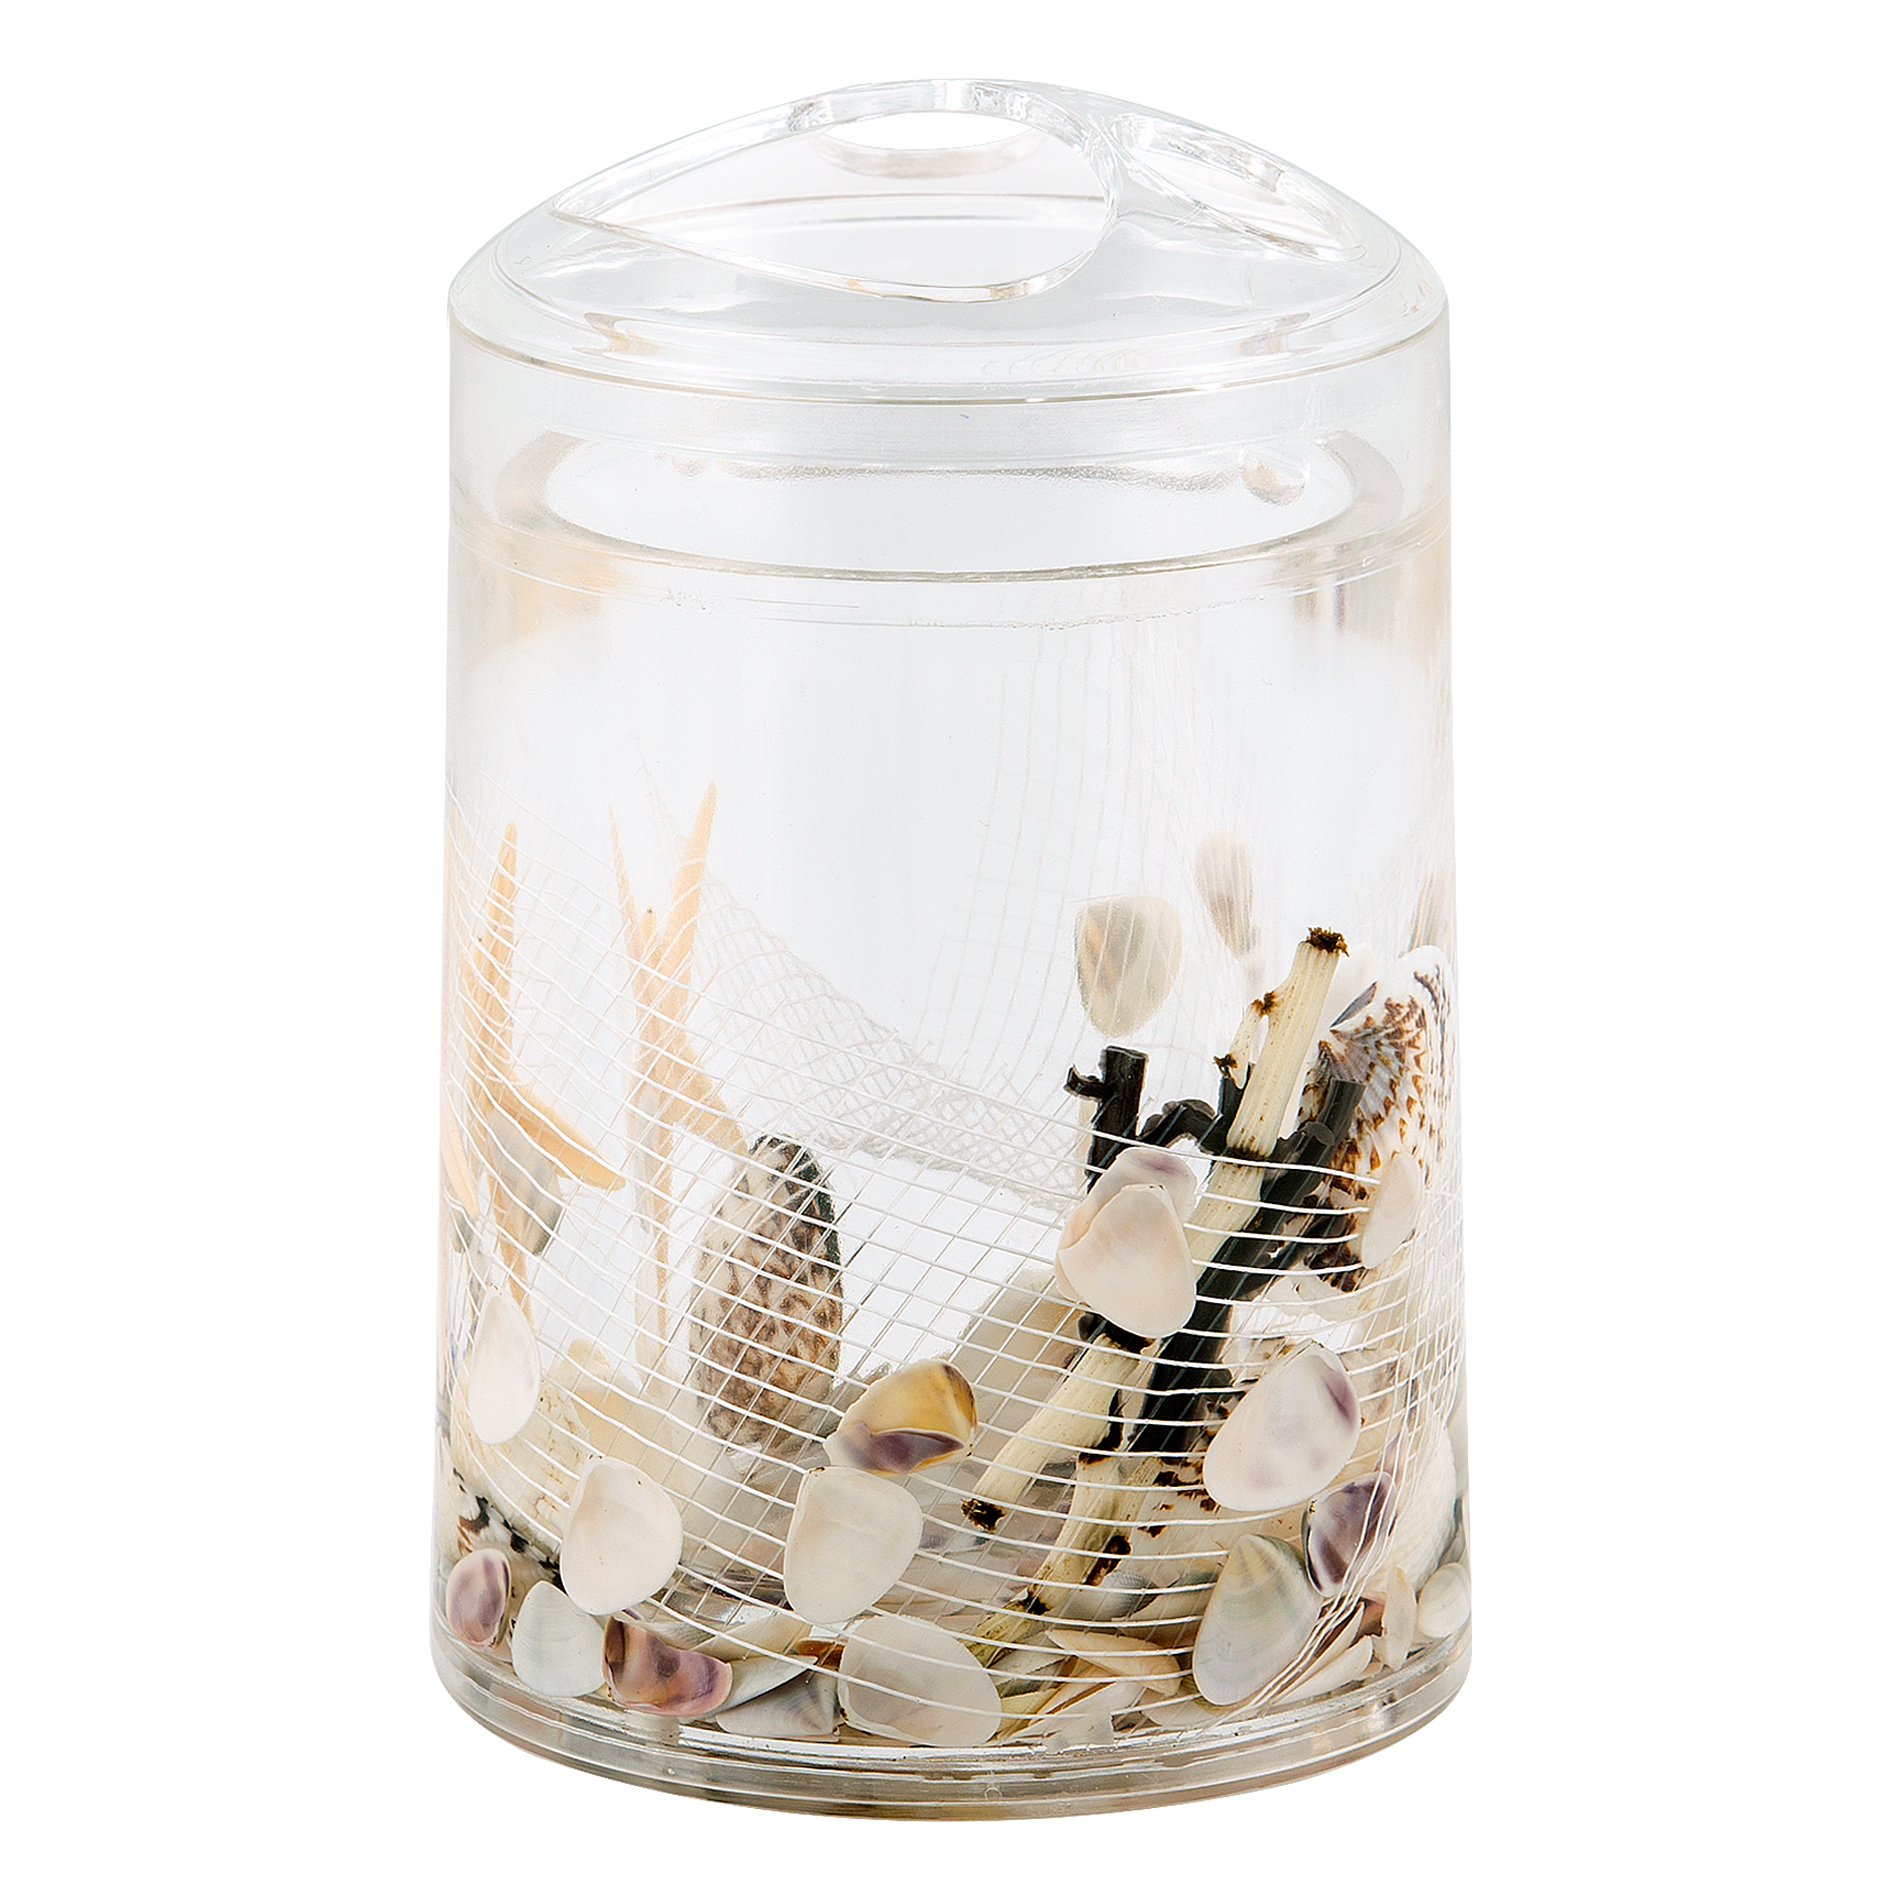 Image of Toothbrush Holder - Seashell